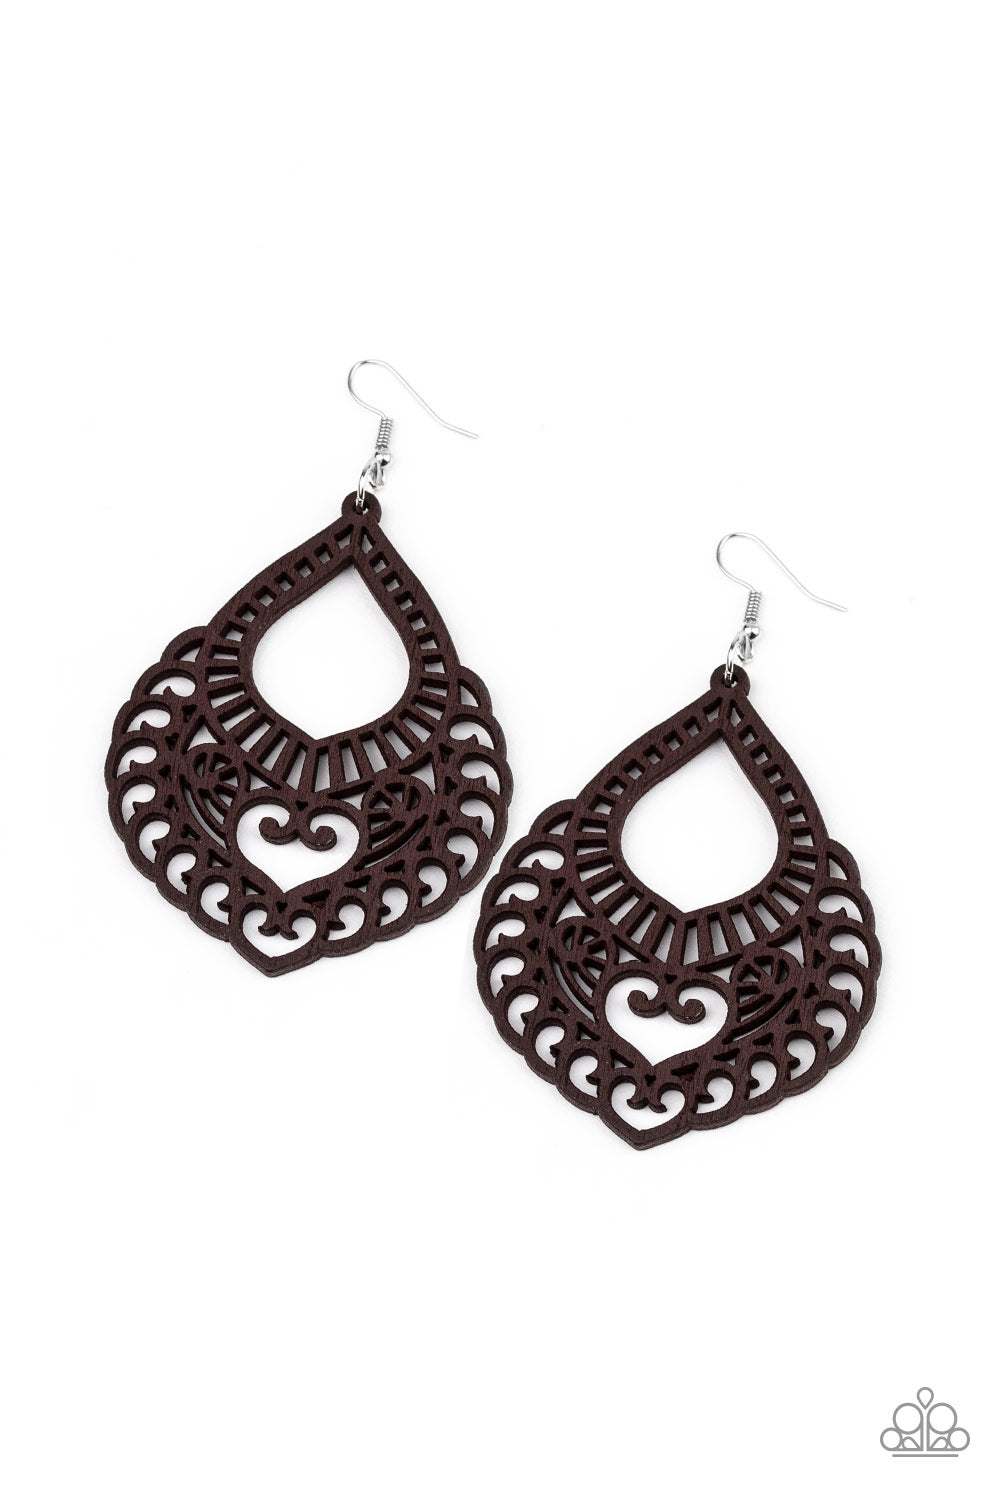 If You WOOD Be So Kind - Brown Earrings